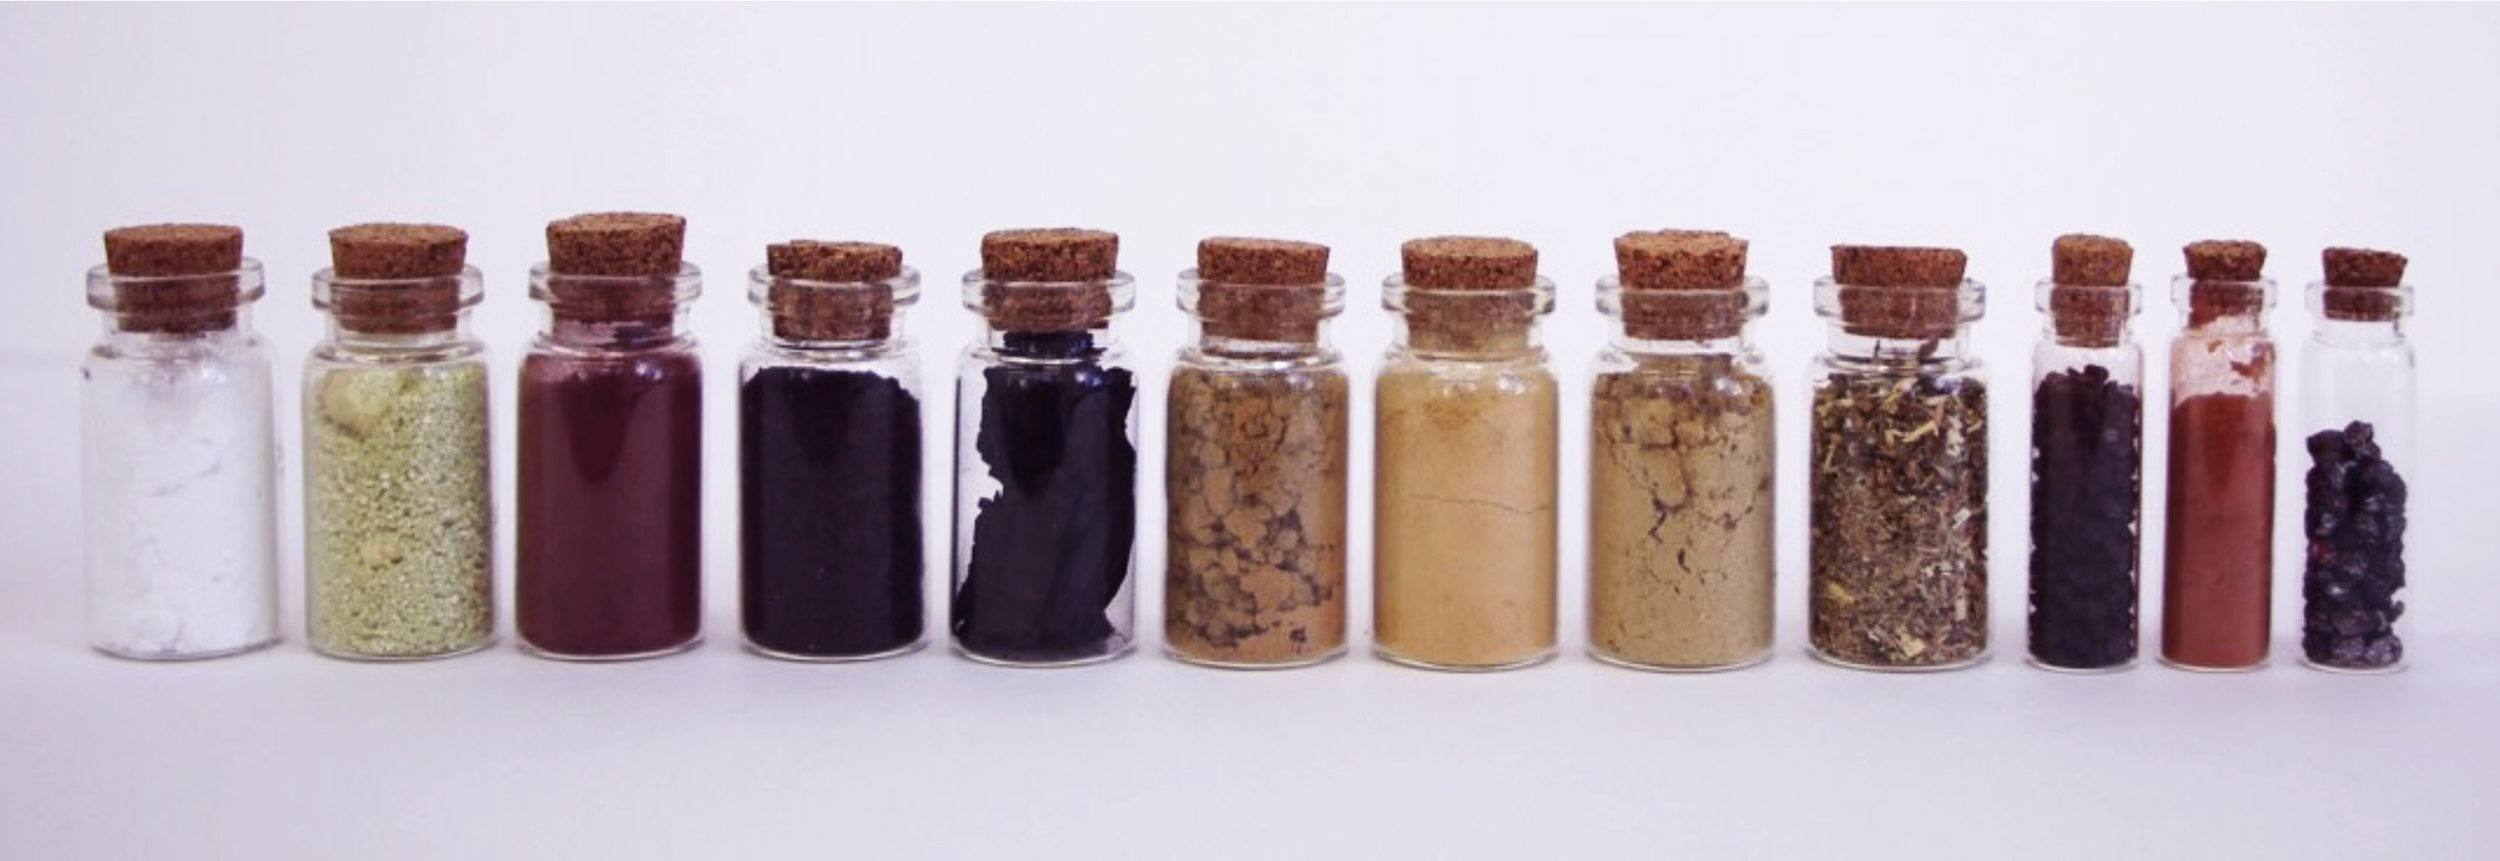 Natural Dye Bottles in Strip.jpg